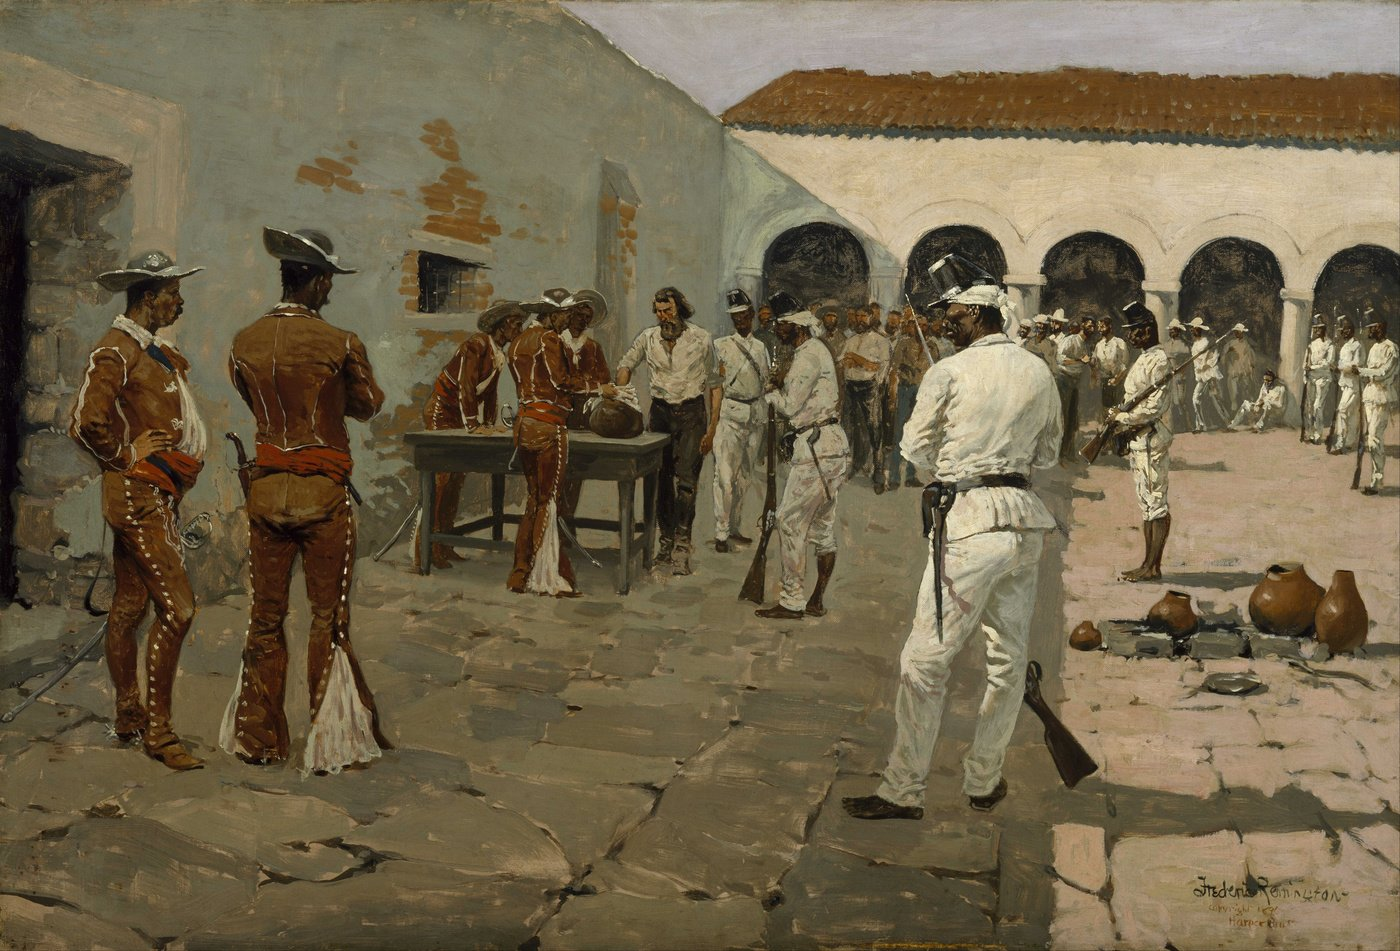 Frederic Remington background